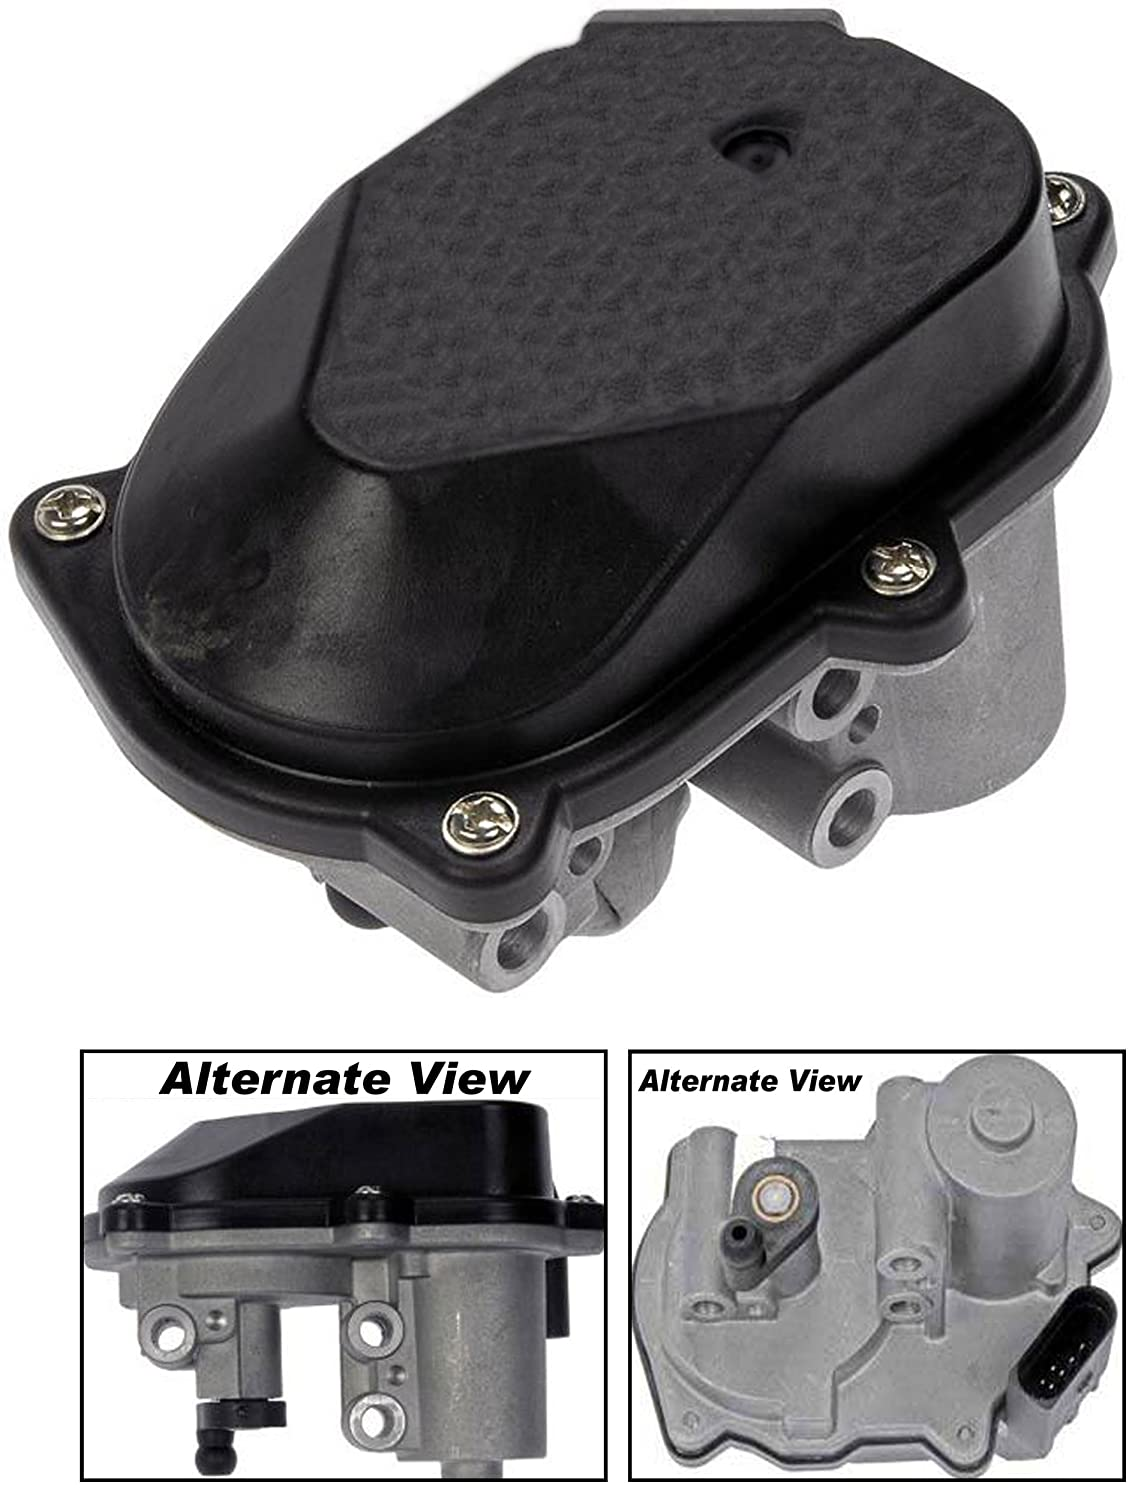 View Vehicle Chart; Replaces VW Audi 06F-133-482-D, 06F-133-482-E, 06F133482E APDTY 119166 IMRC Intake Manifold Variable Adjusting Runner Control Motor Unit Fits Select VW Audi With 2.0L Engine